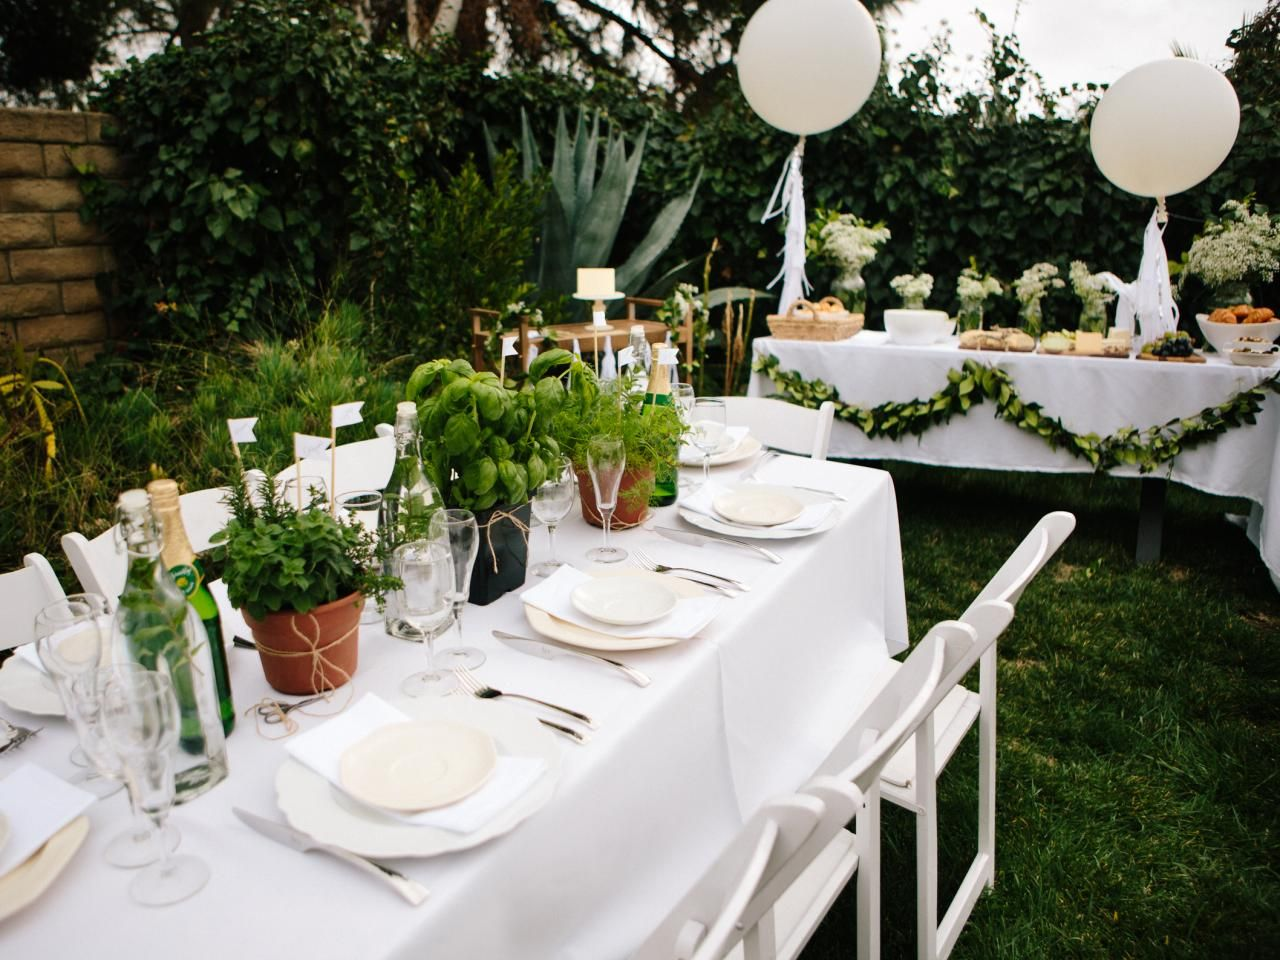 How to Plan a French Inspired All White Baby Shower Baby shower